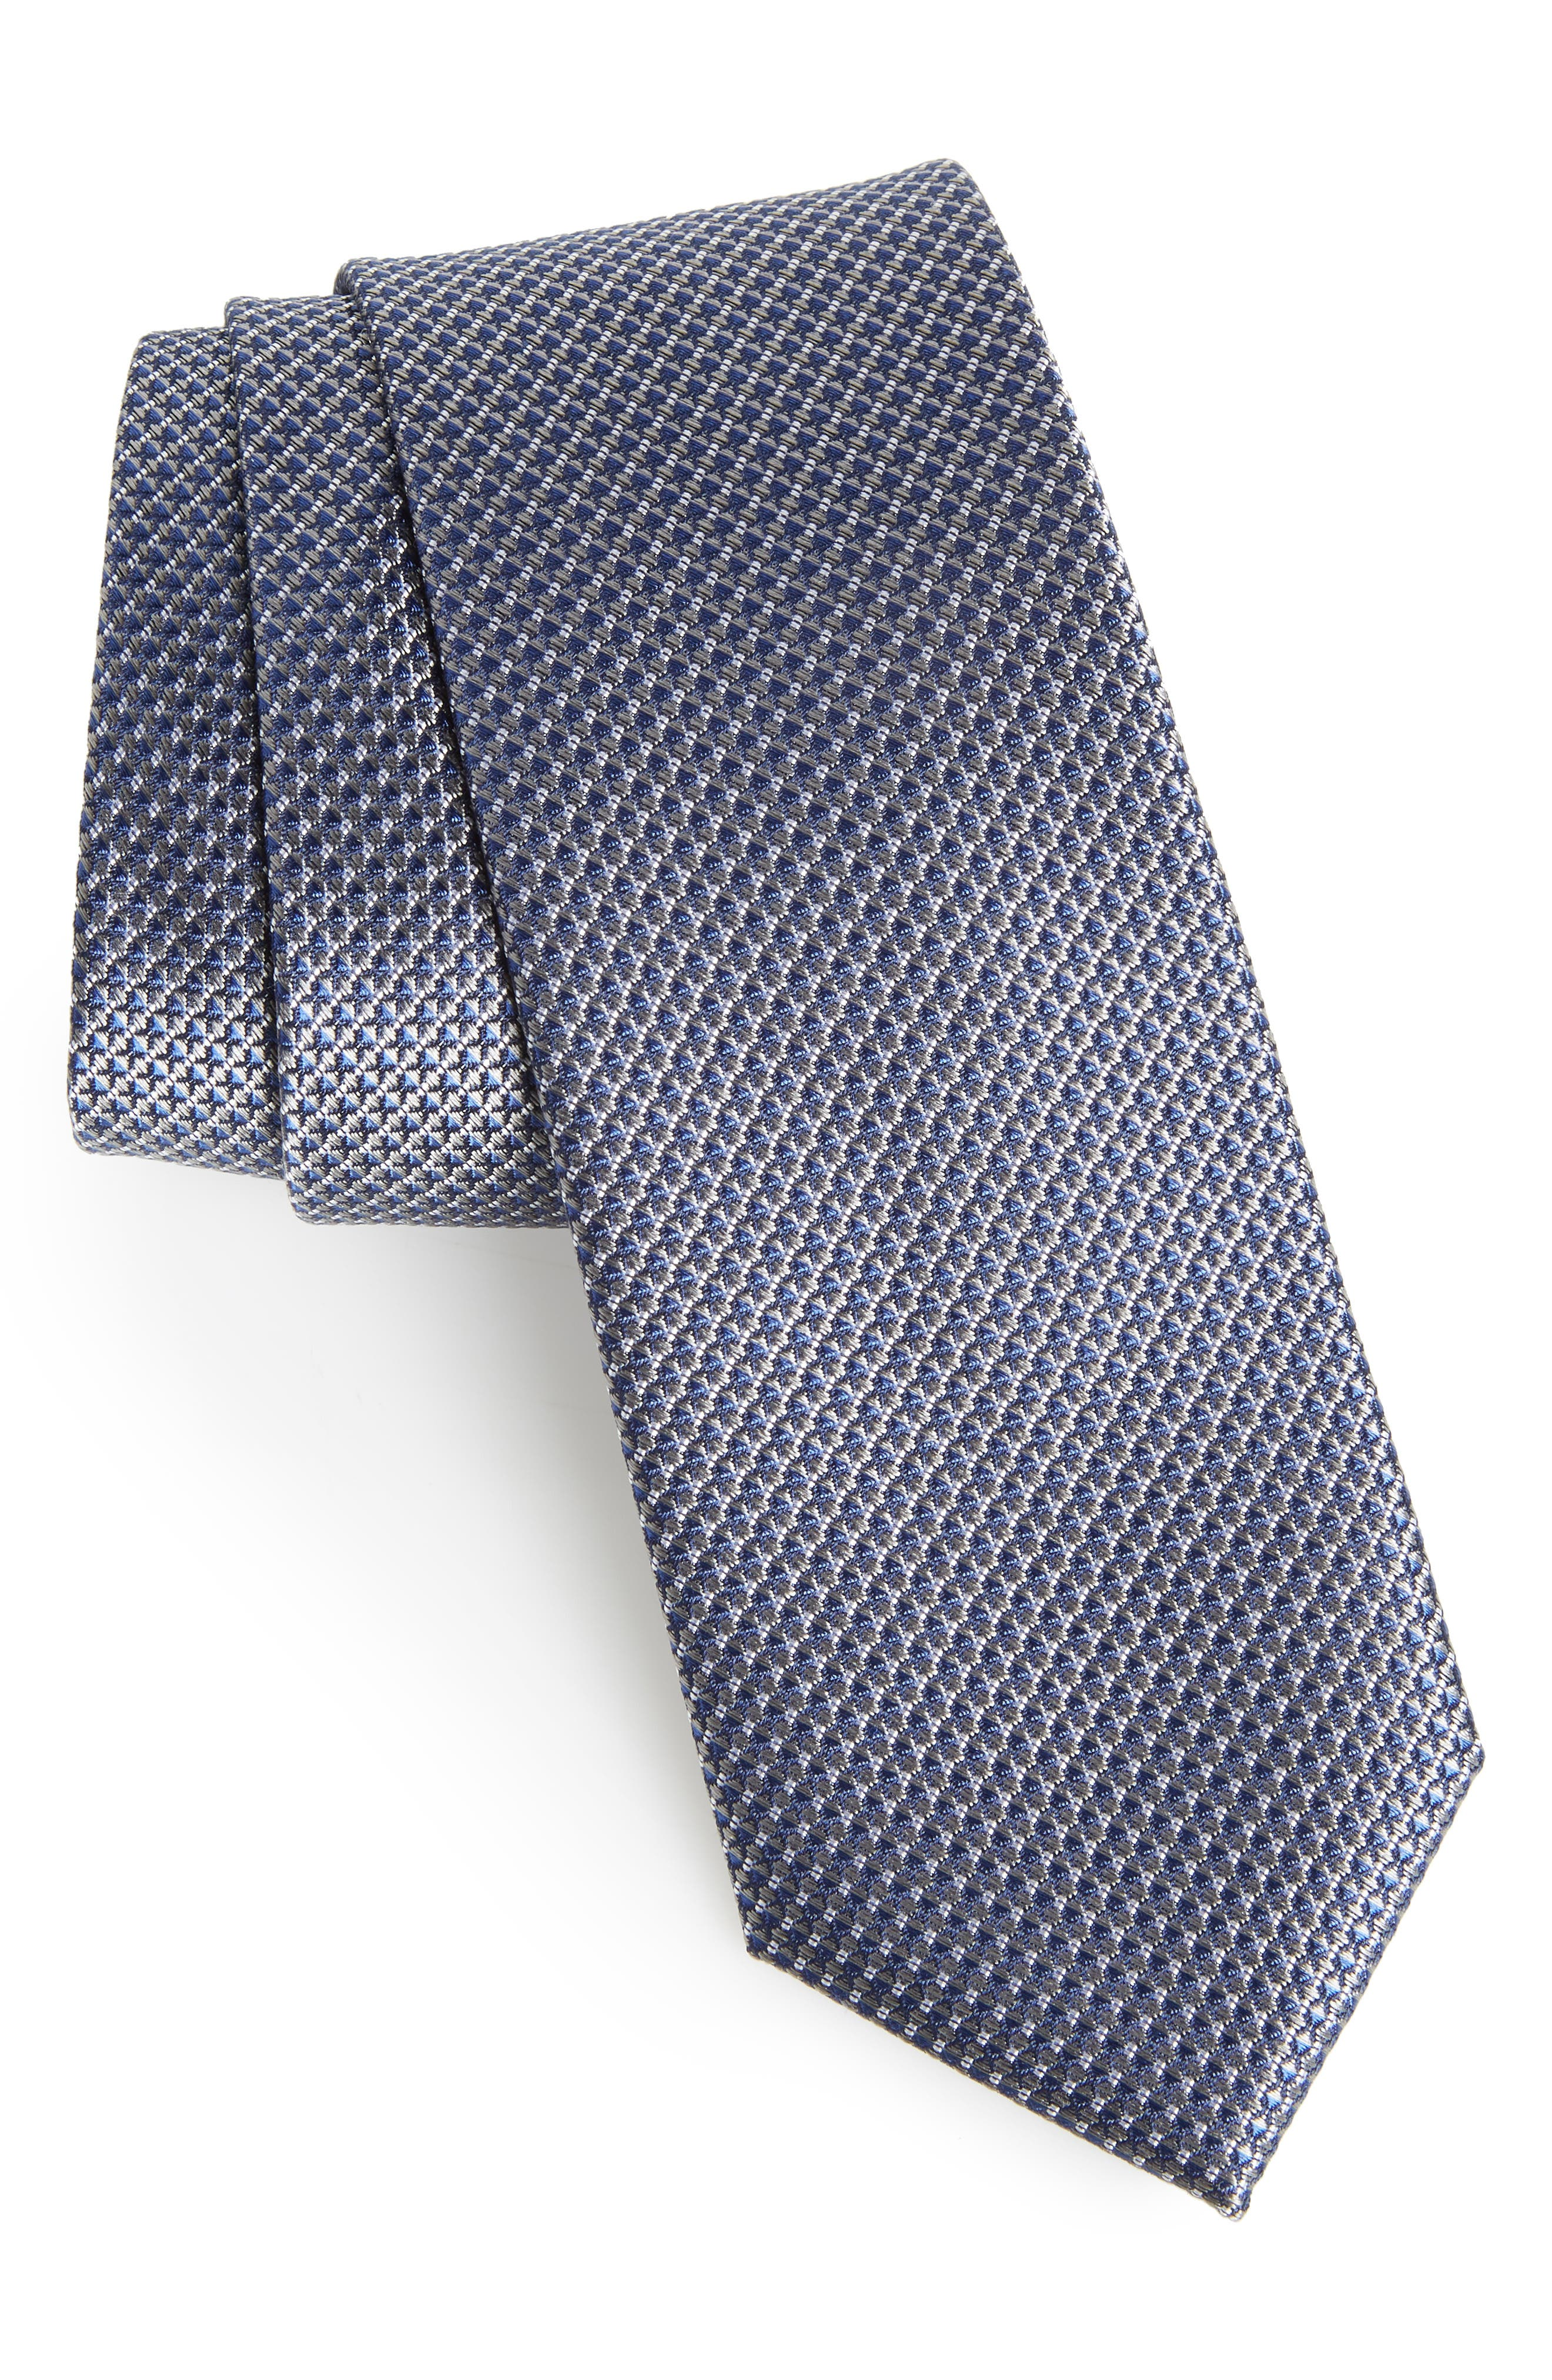 Anser Solid Silk Tie,                             Main thumbnail 1, color,                             CHARCOAL